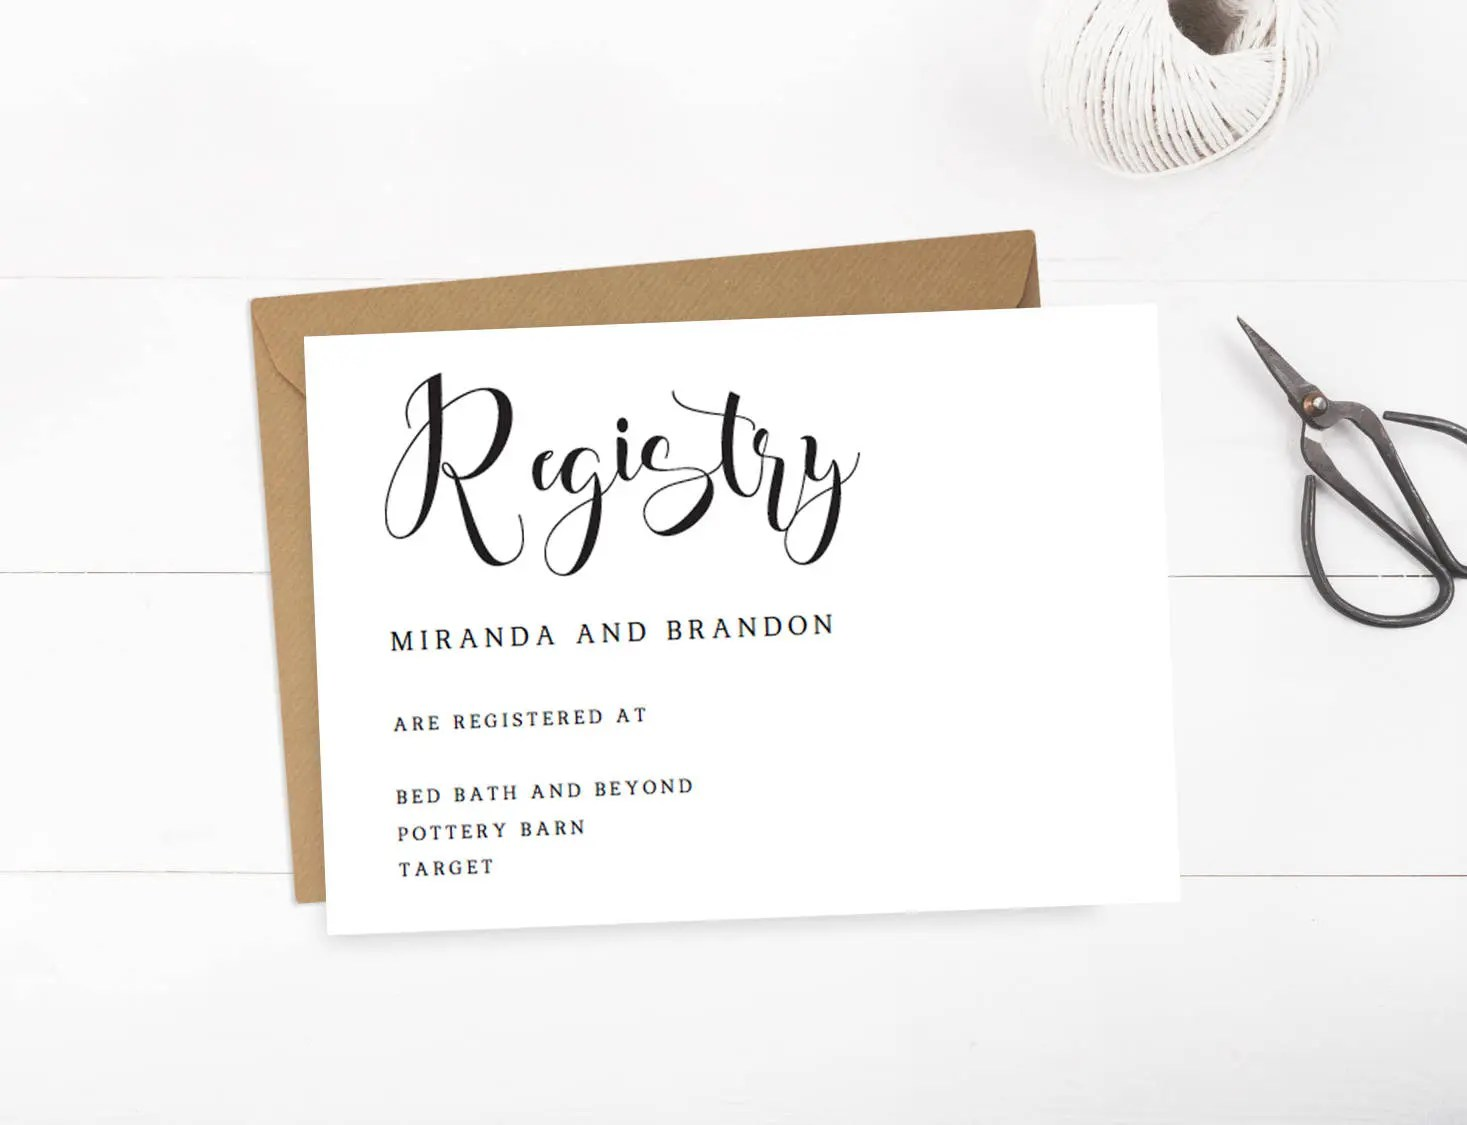 Wedding Registry Cards Baby Registry Card Gift Registry Card Etsy